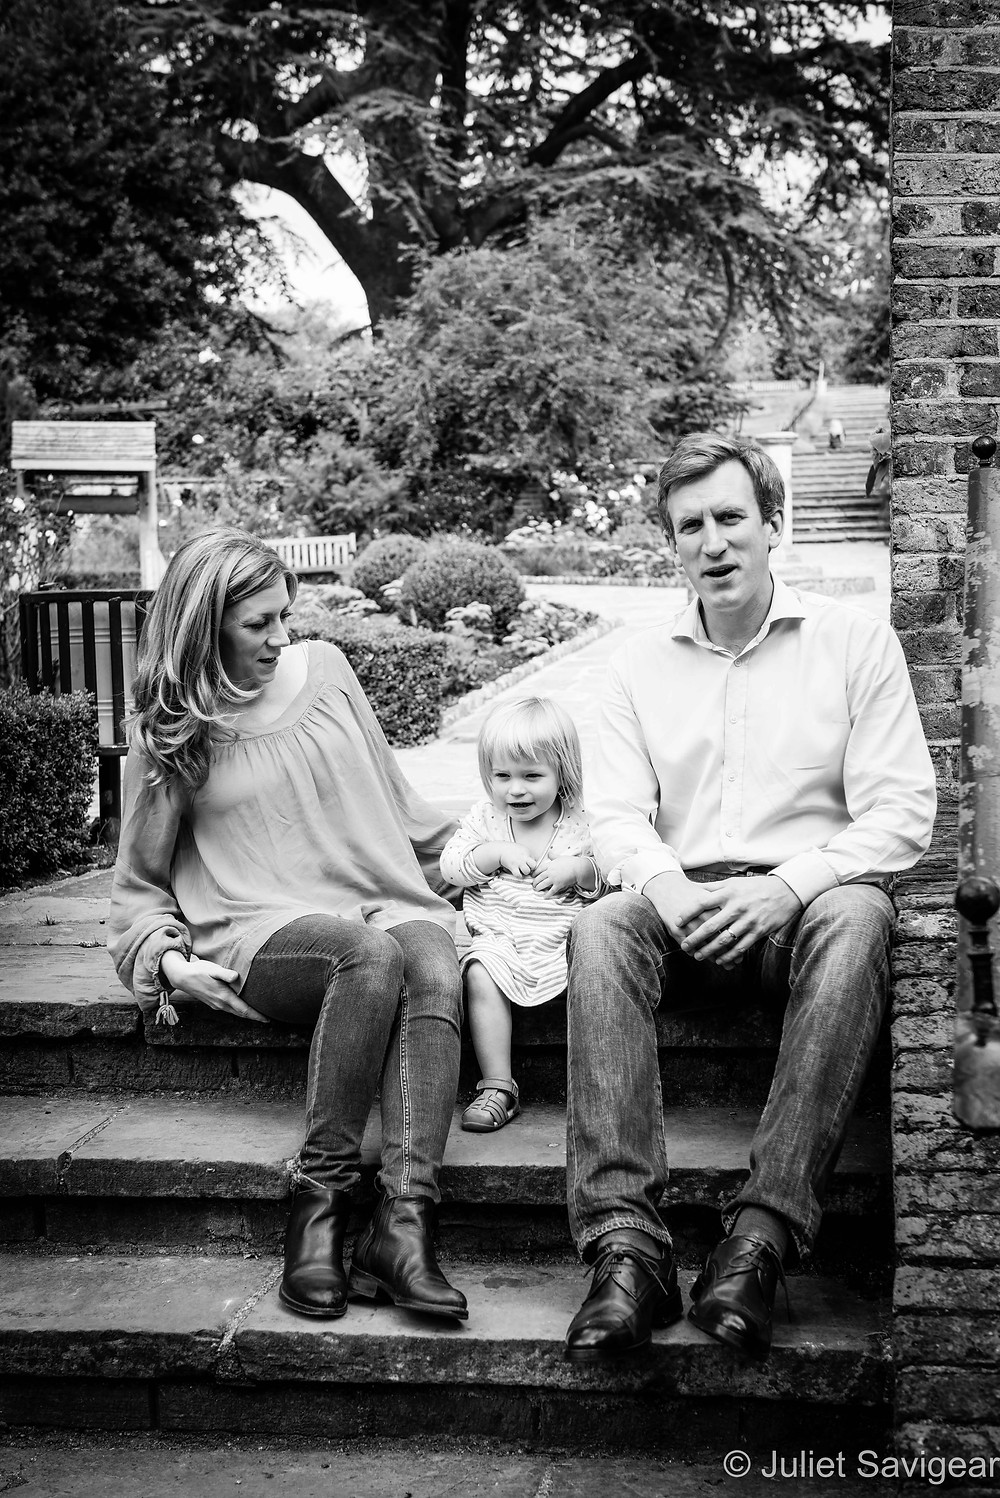 On The Steps - Family Photography, The Rookery, Streatham Common